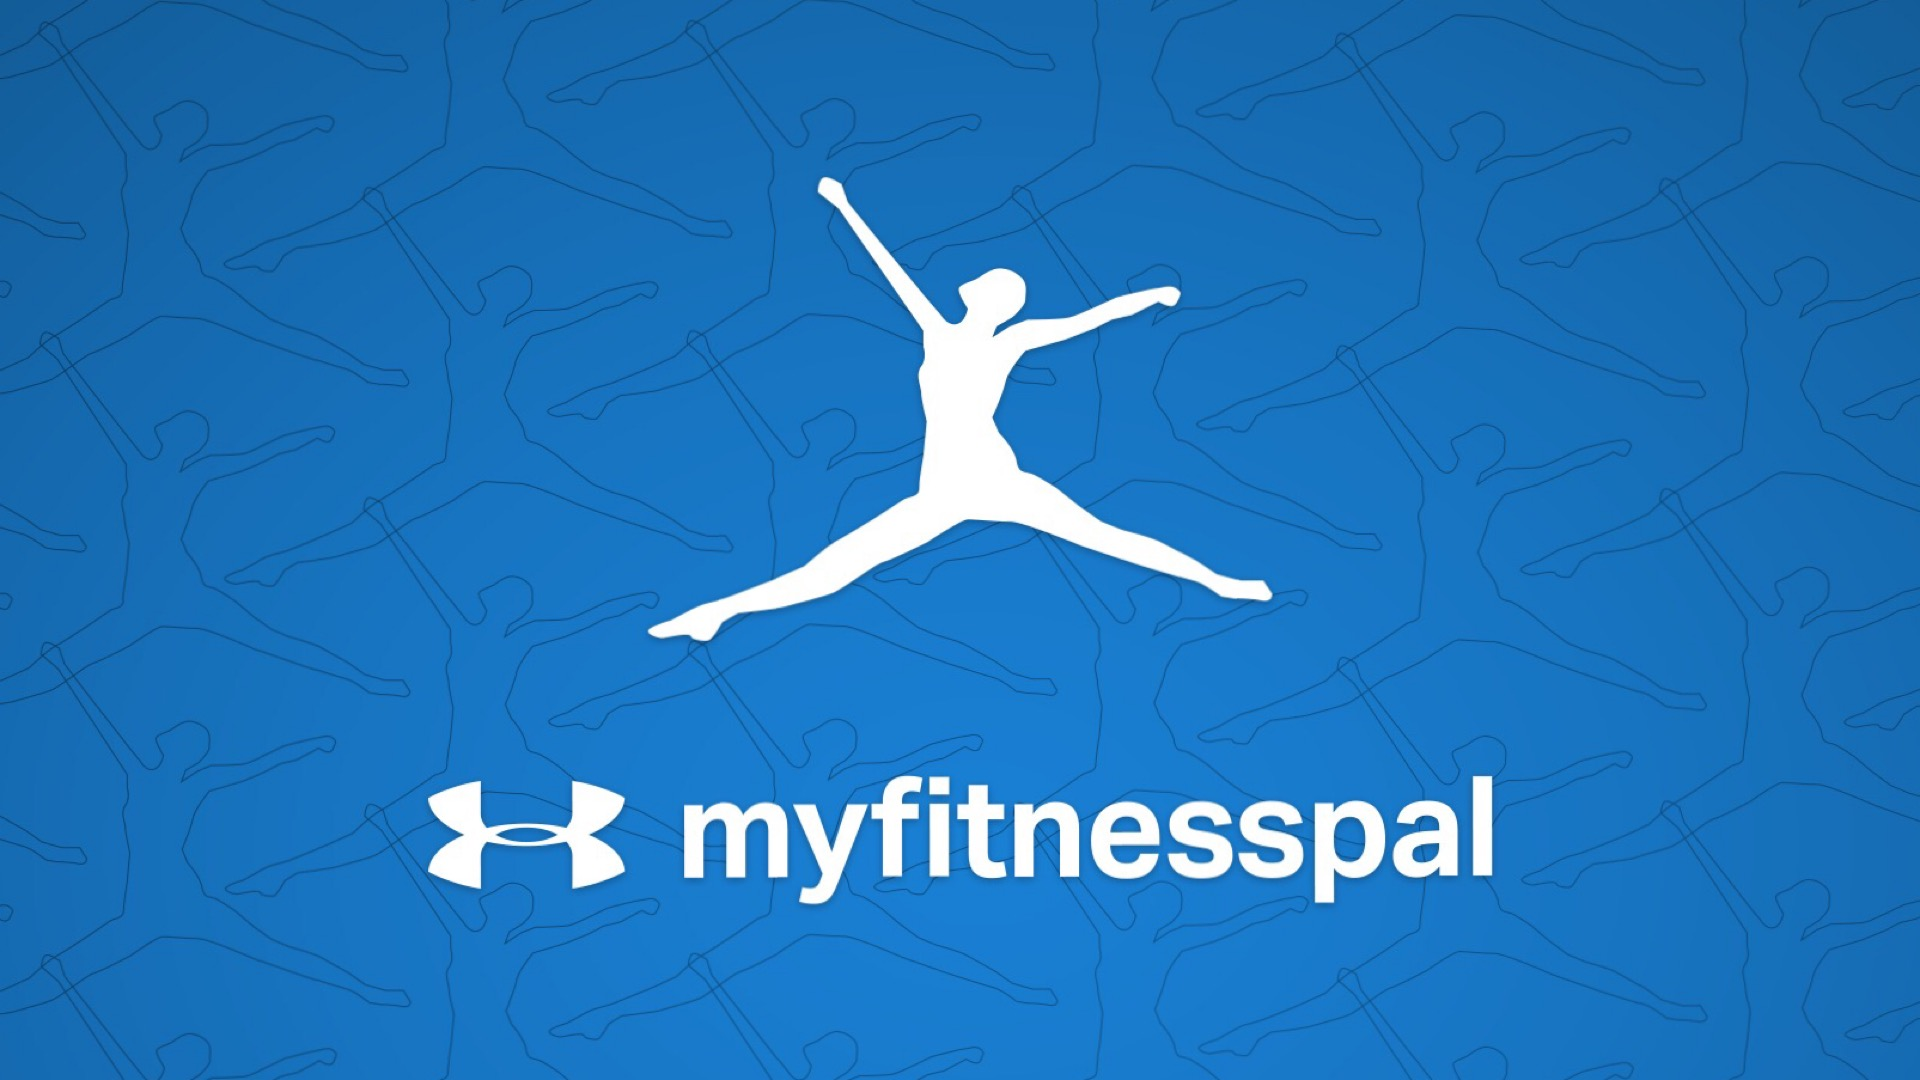 Personal Data of 150 Million MyFitnessPal Users Accessed in Breach